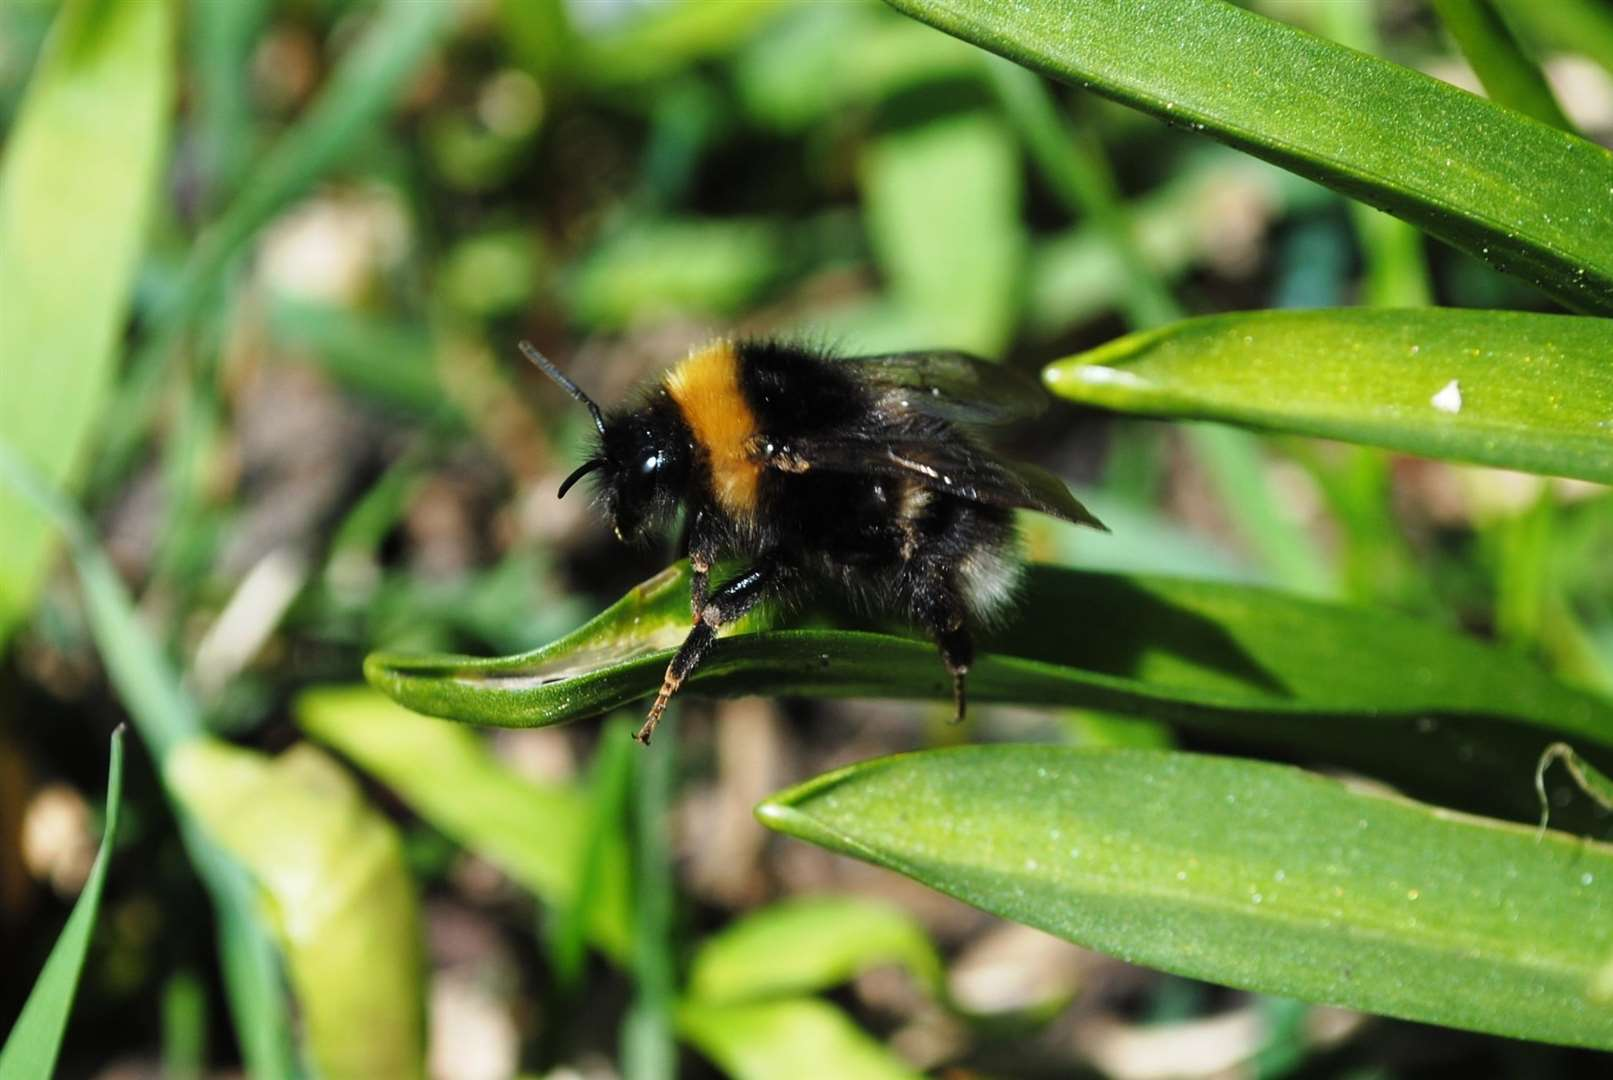 The exact reasons for Kent's unusually high rare bumblebee population are unknown